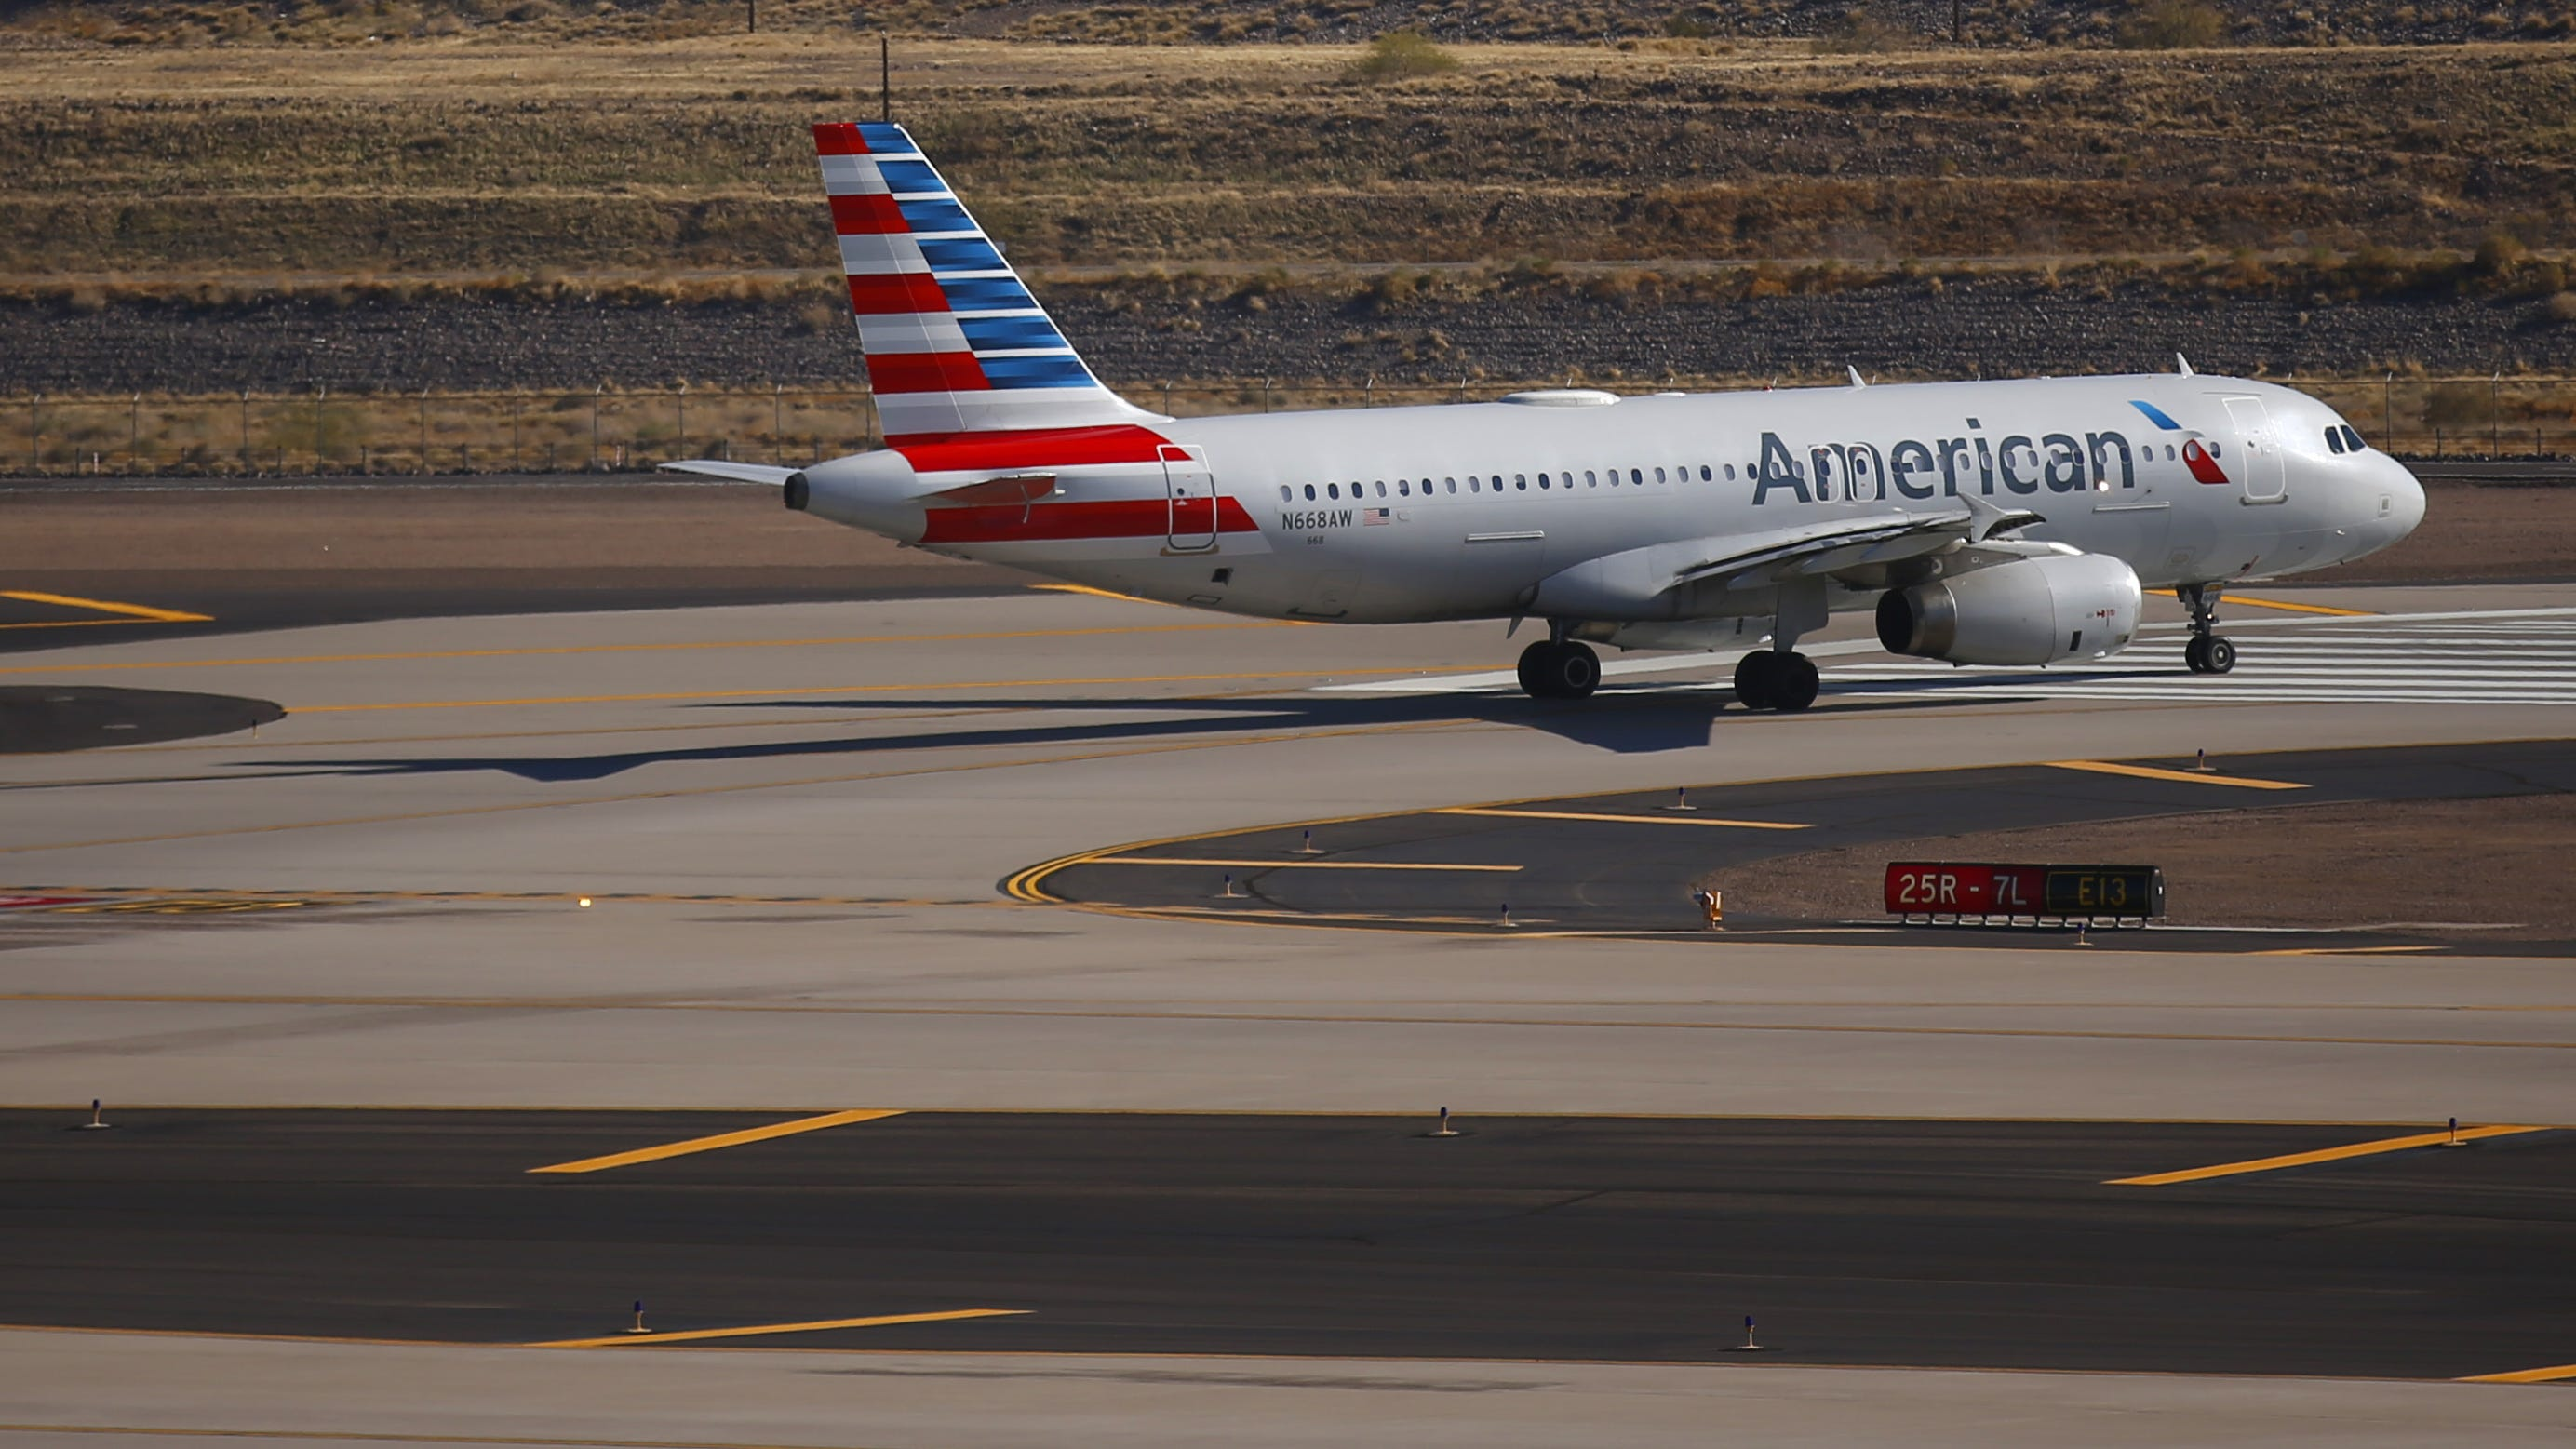 Racial slurs fly, fight breaks out on American Airlines flight, plane diverts to Phoenix